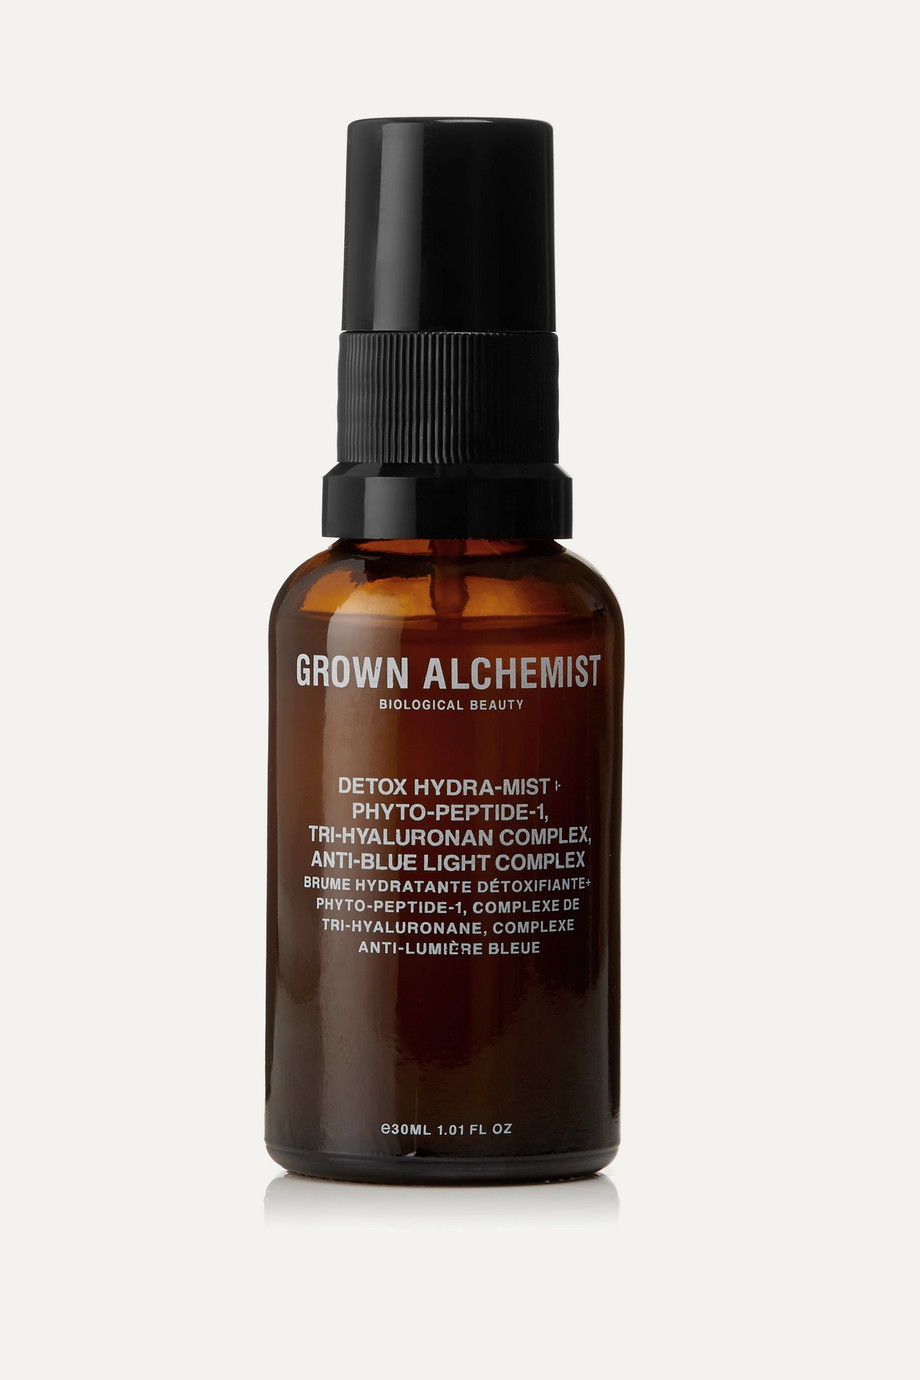 GROWN ALCHEMIST Detox Hydra-Mist+, 30ml